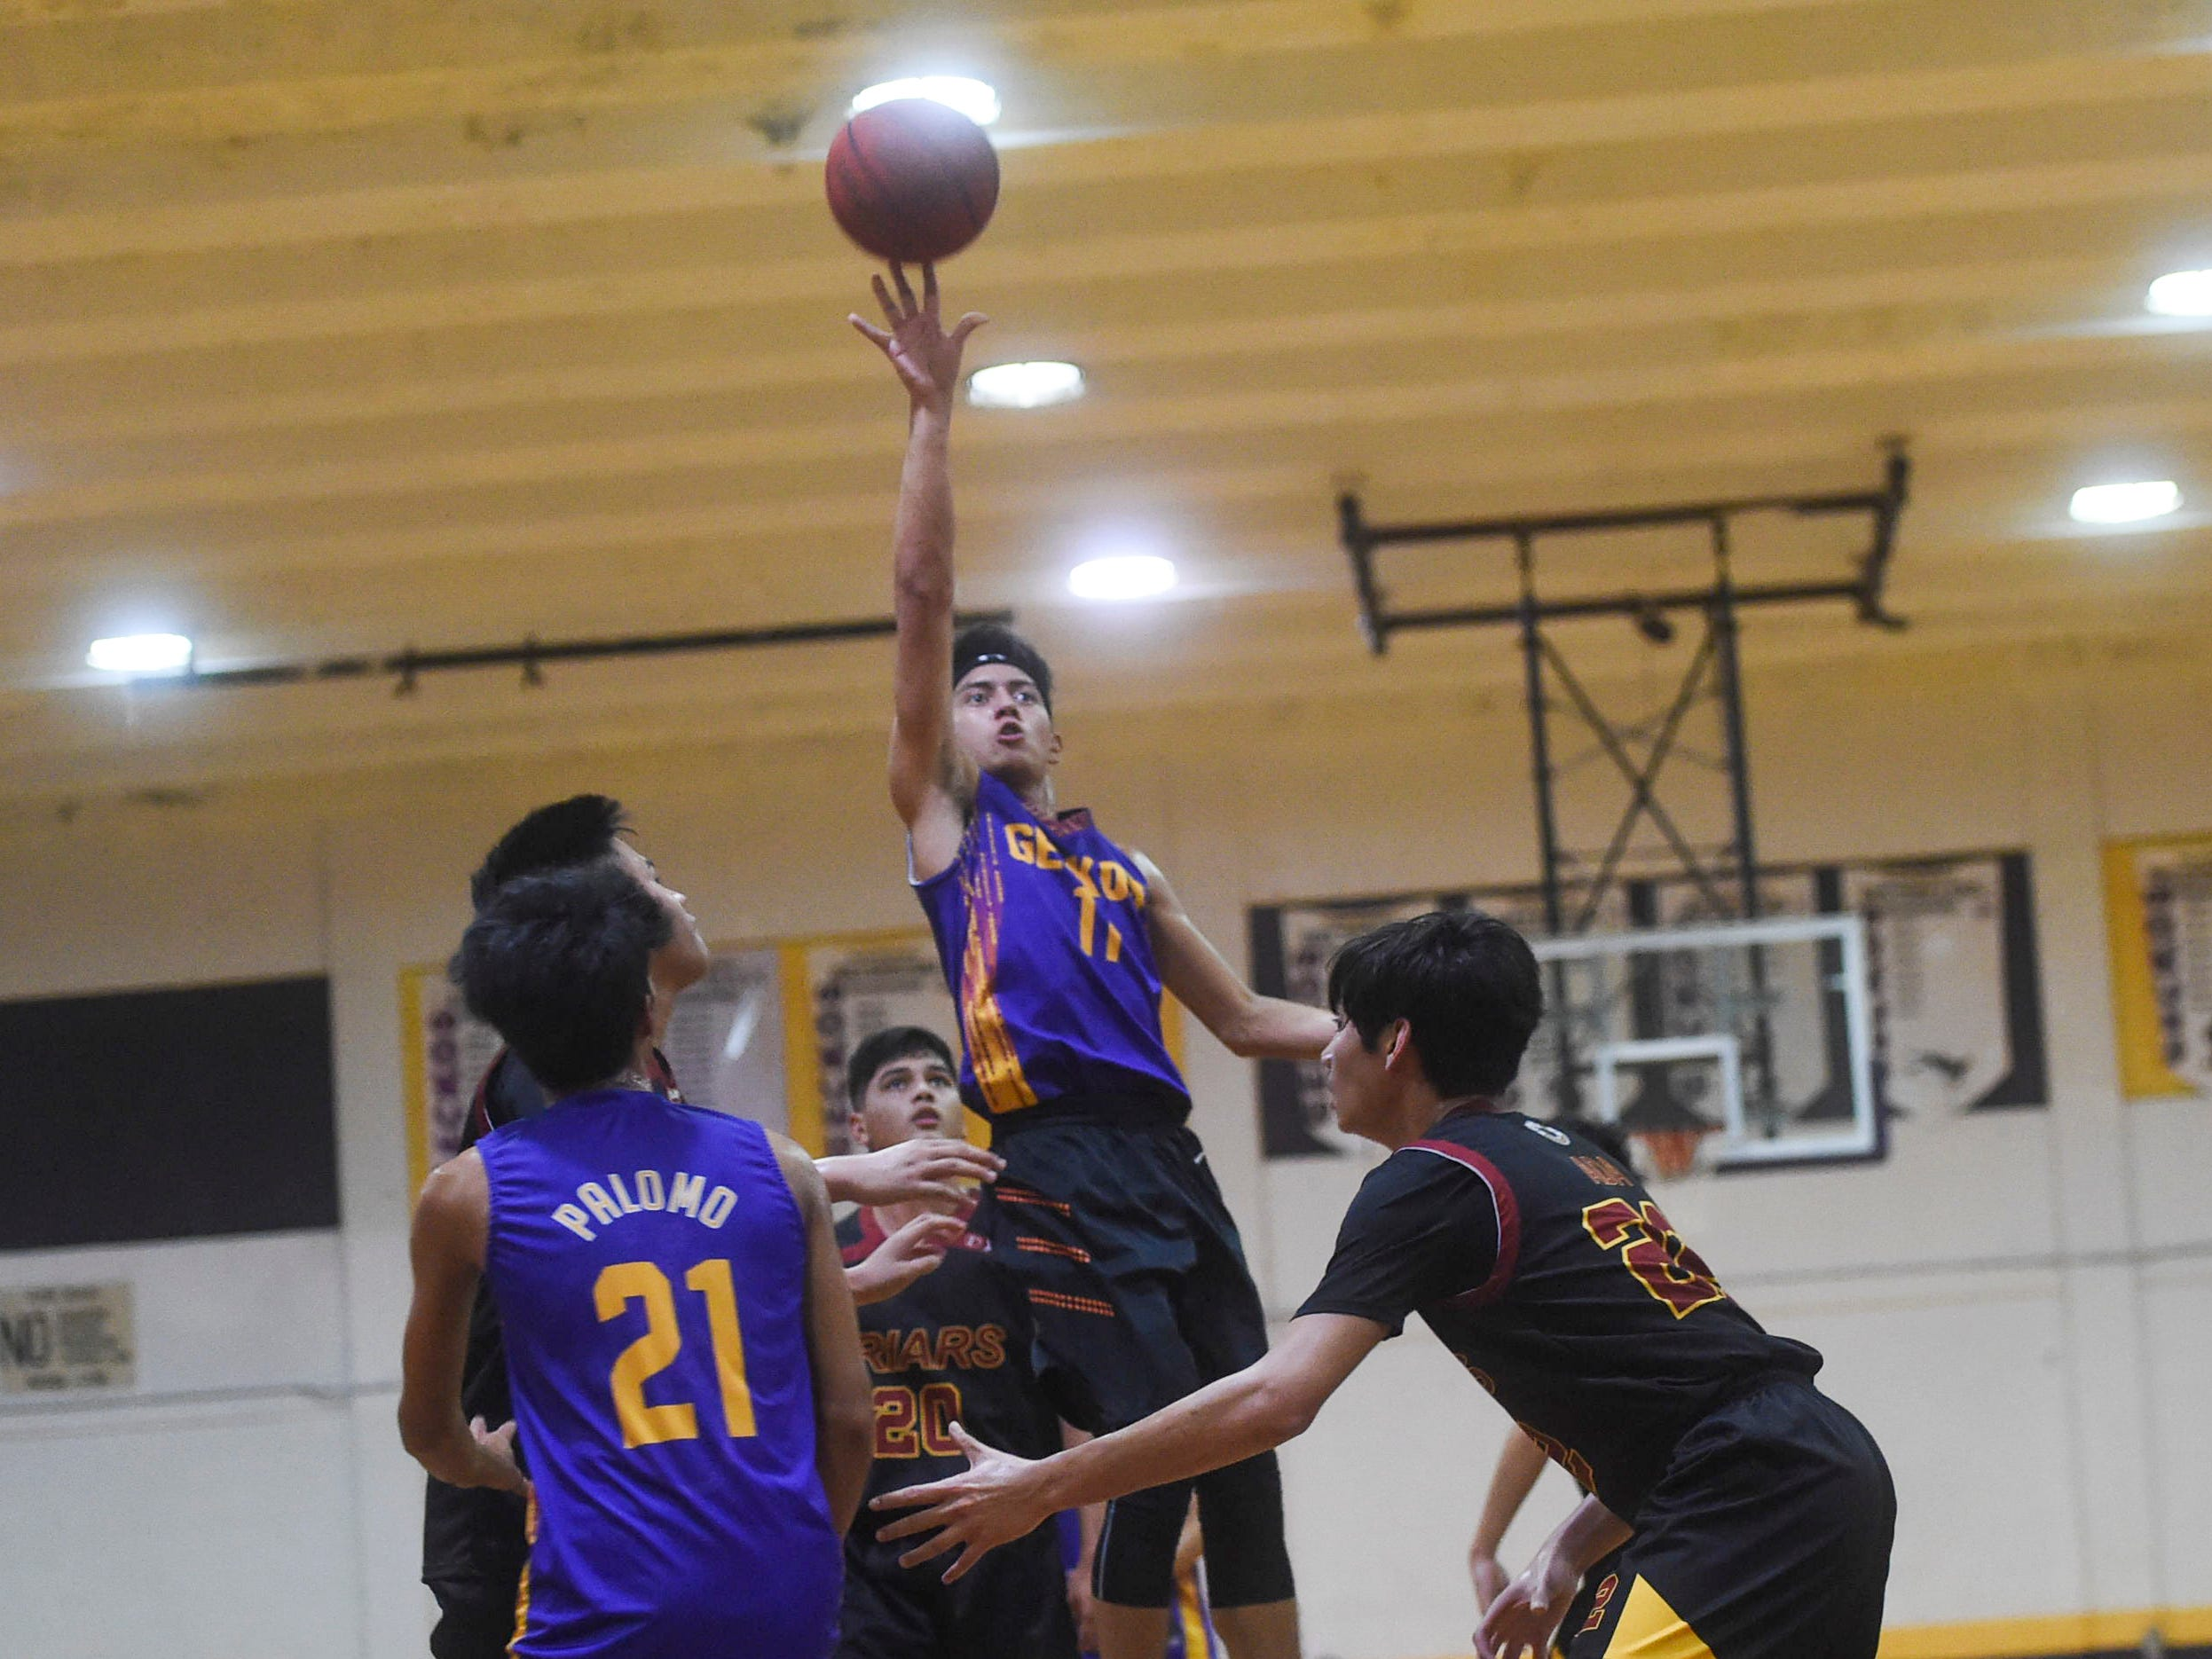 George Washington's Ricky Macias (11) attempts a floater against the Friars during their Independent Interscholastic Athletic Association of Guam Boys' Basketball game at the GW High School gym, Jan. 19, 2019. The Friars came through with a 52-69 comeback victory over the Geckos after trailing in the first half.